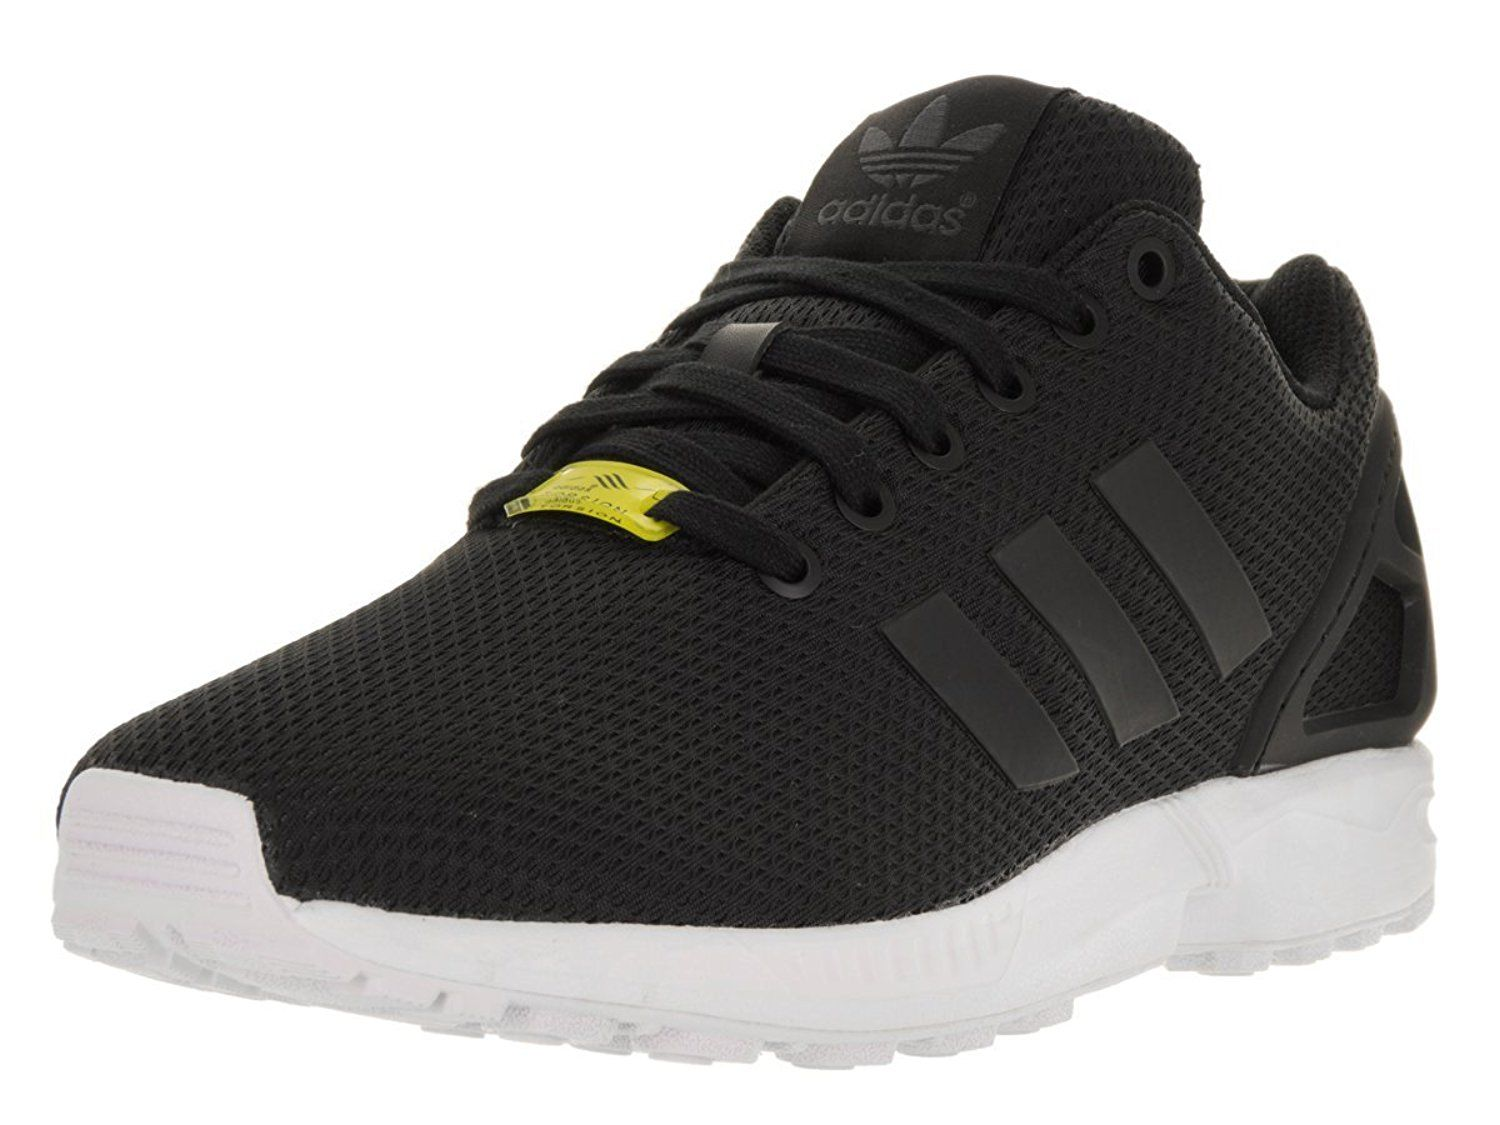 adidas Men's Zx Flux Fashion Sneaker * Startling review available here  : Fashion sneakers